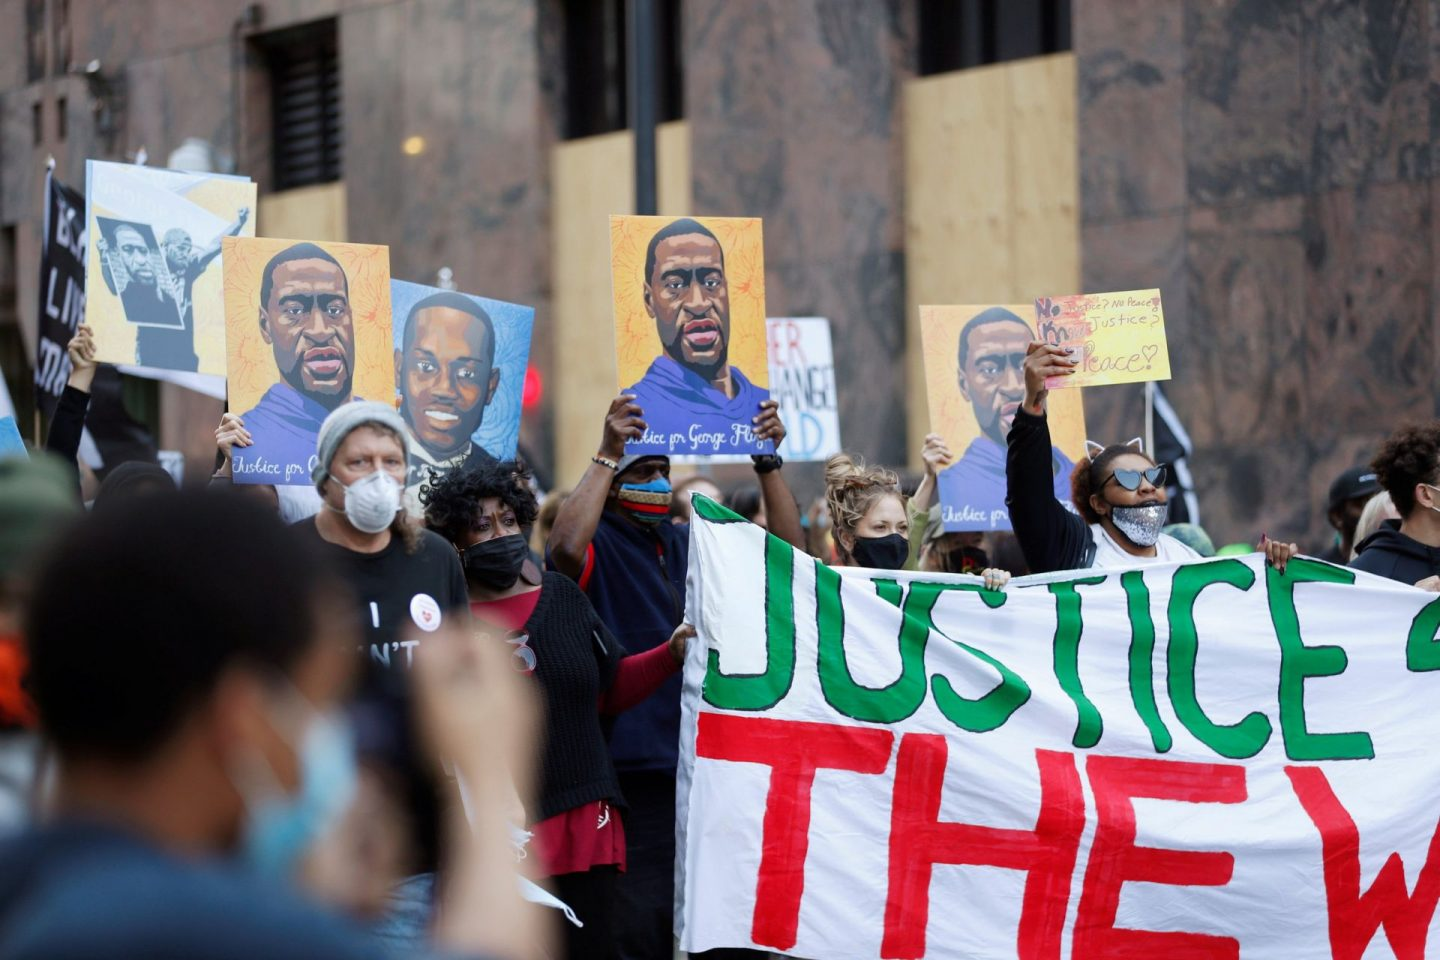 No justice for George Floyd while policing exists